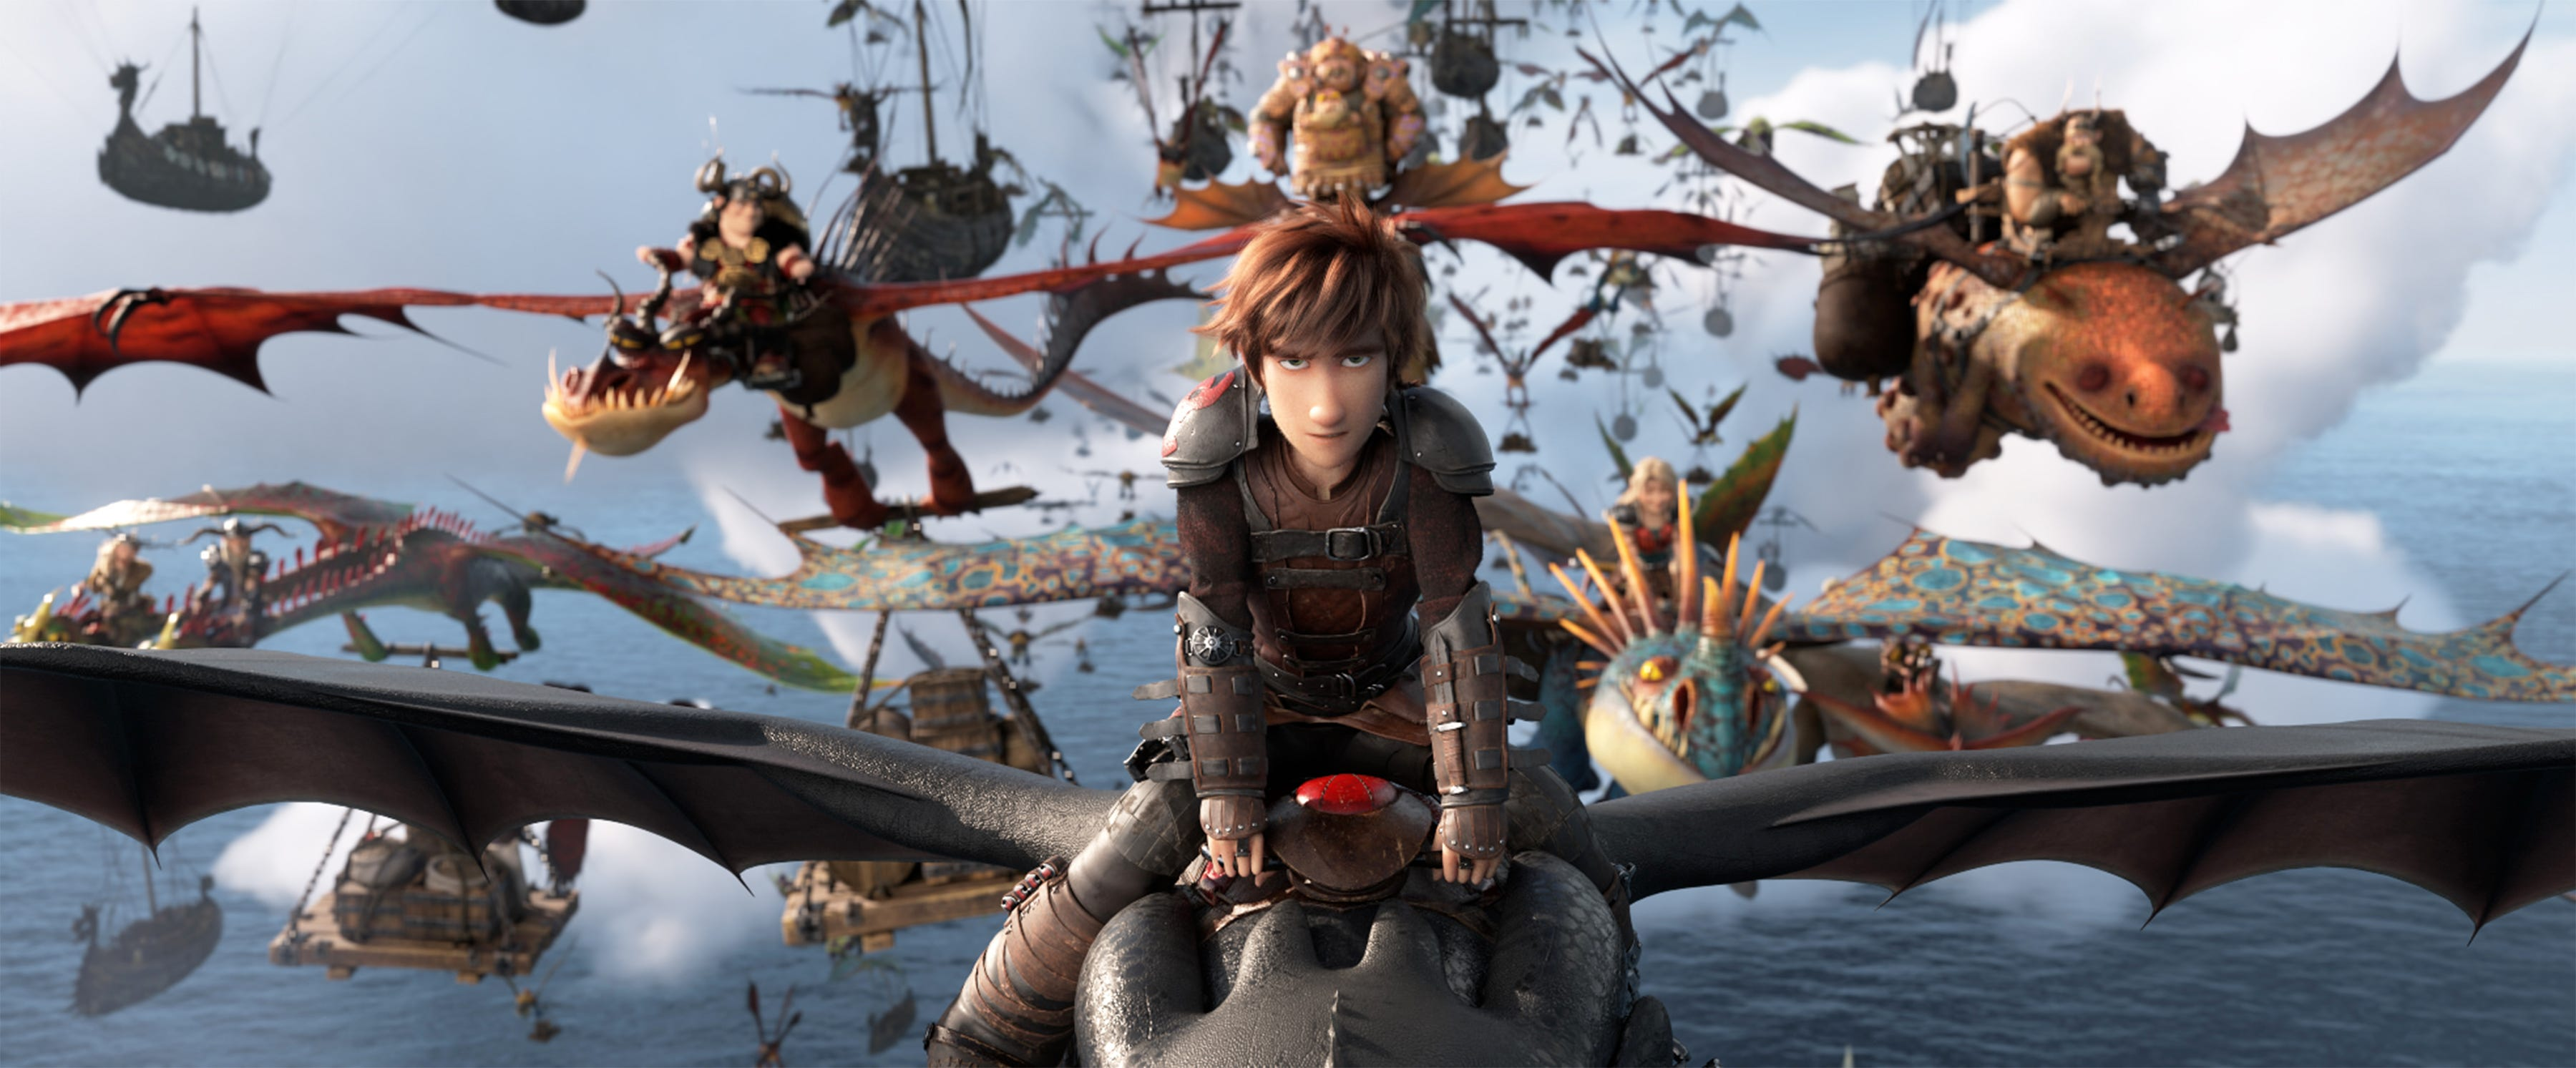 'How to Train Your Dragon 3' breathes box-office fire, keeps the last 'Madea' movie at bay